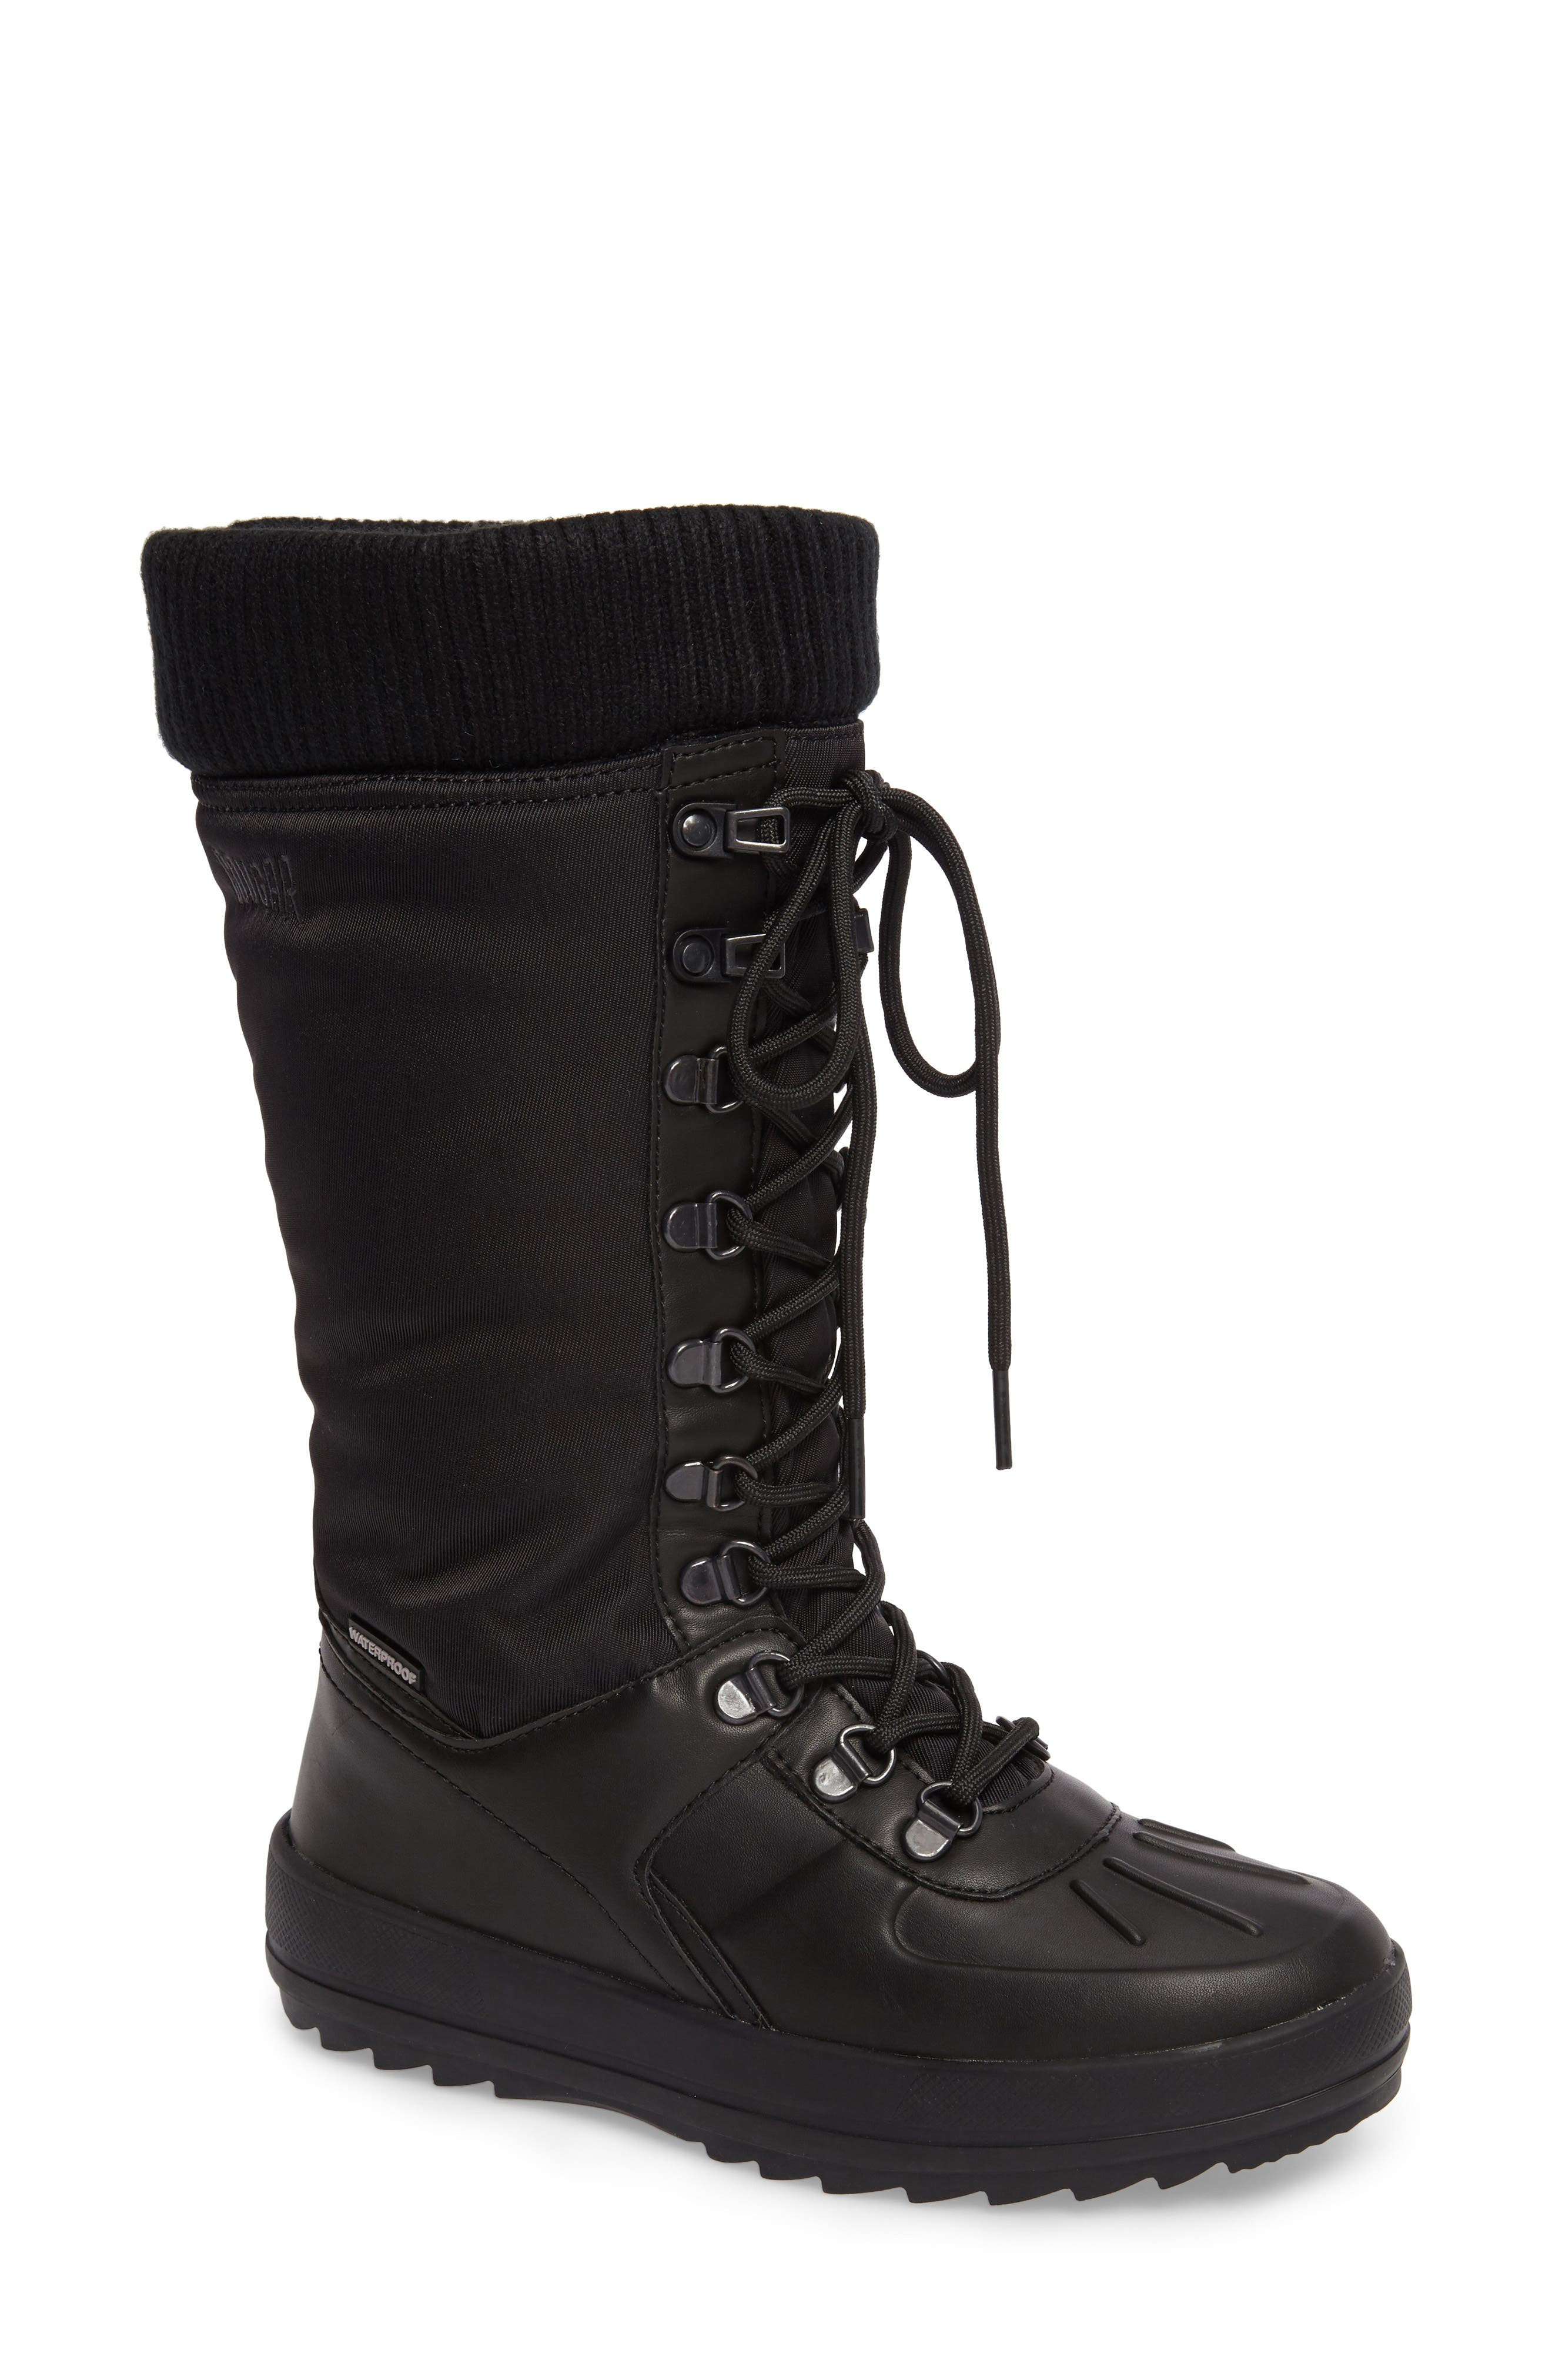 Vancouver Waterproof Winter Boot,                             Main thumbnail 1, color,                             Black All Over